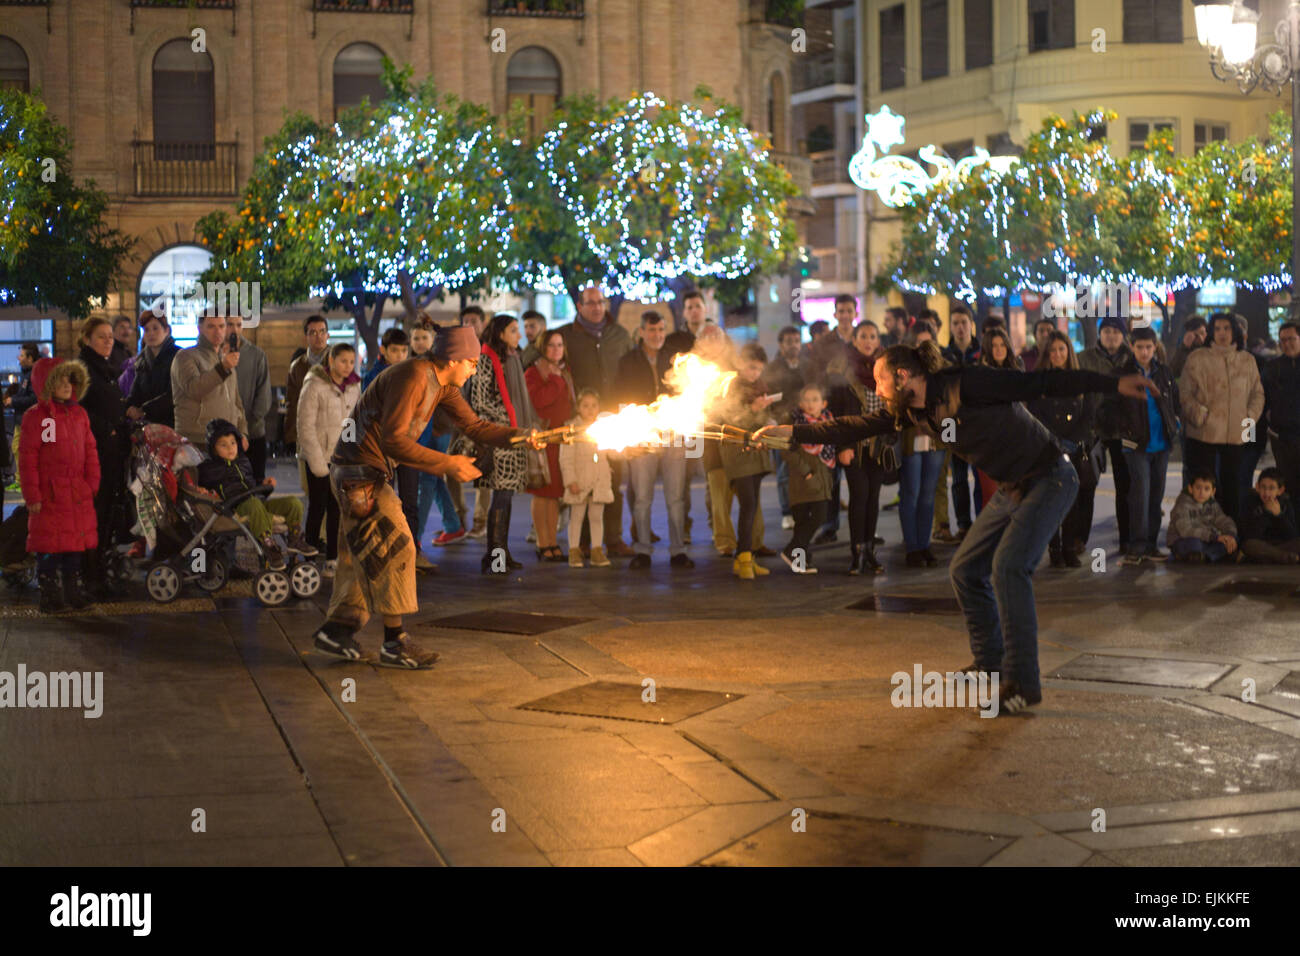 CORDOBA - JAN 4: A street entertainer playing with fire torch in front of a large crowd of people, on January 4, - Stock Image